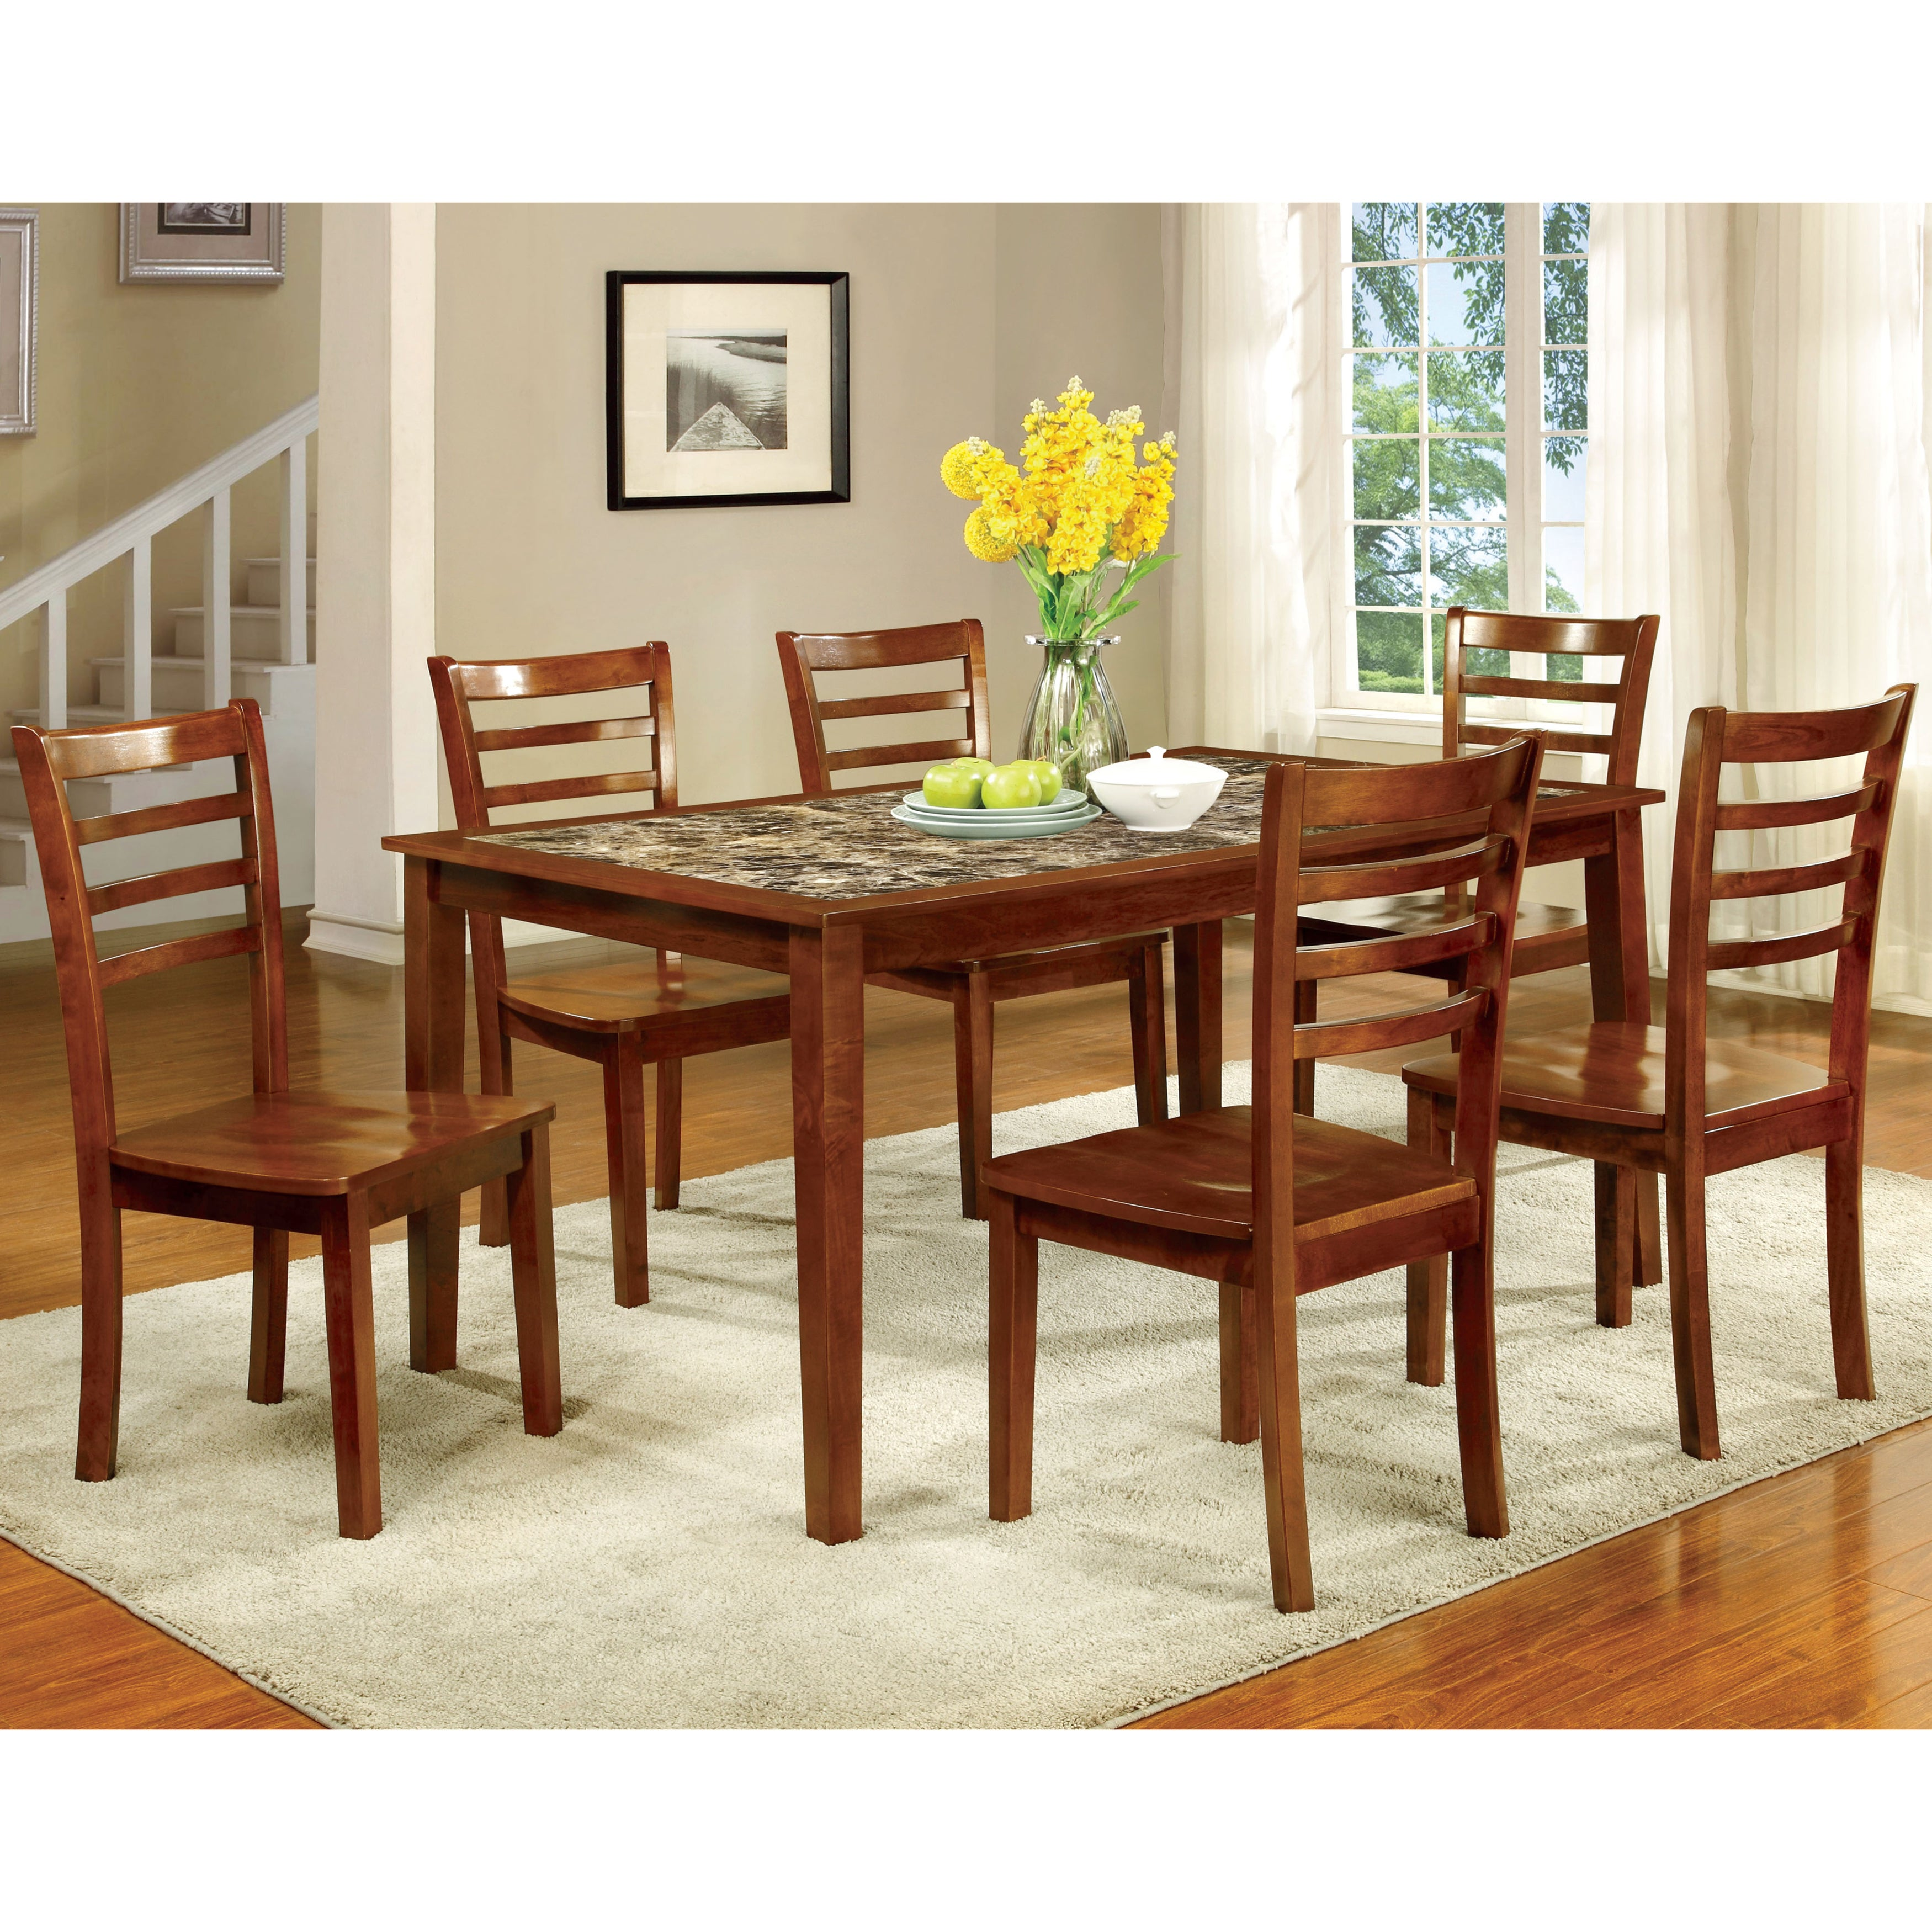 Furniture of America Brixen 7-Piece Faux Marble Dining Se...